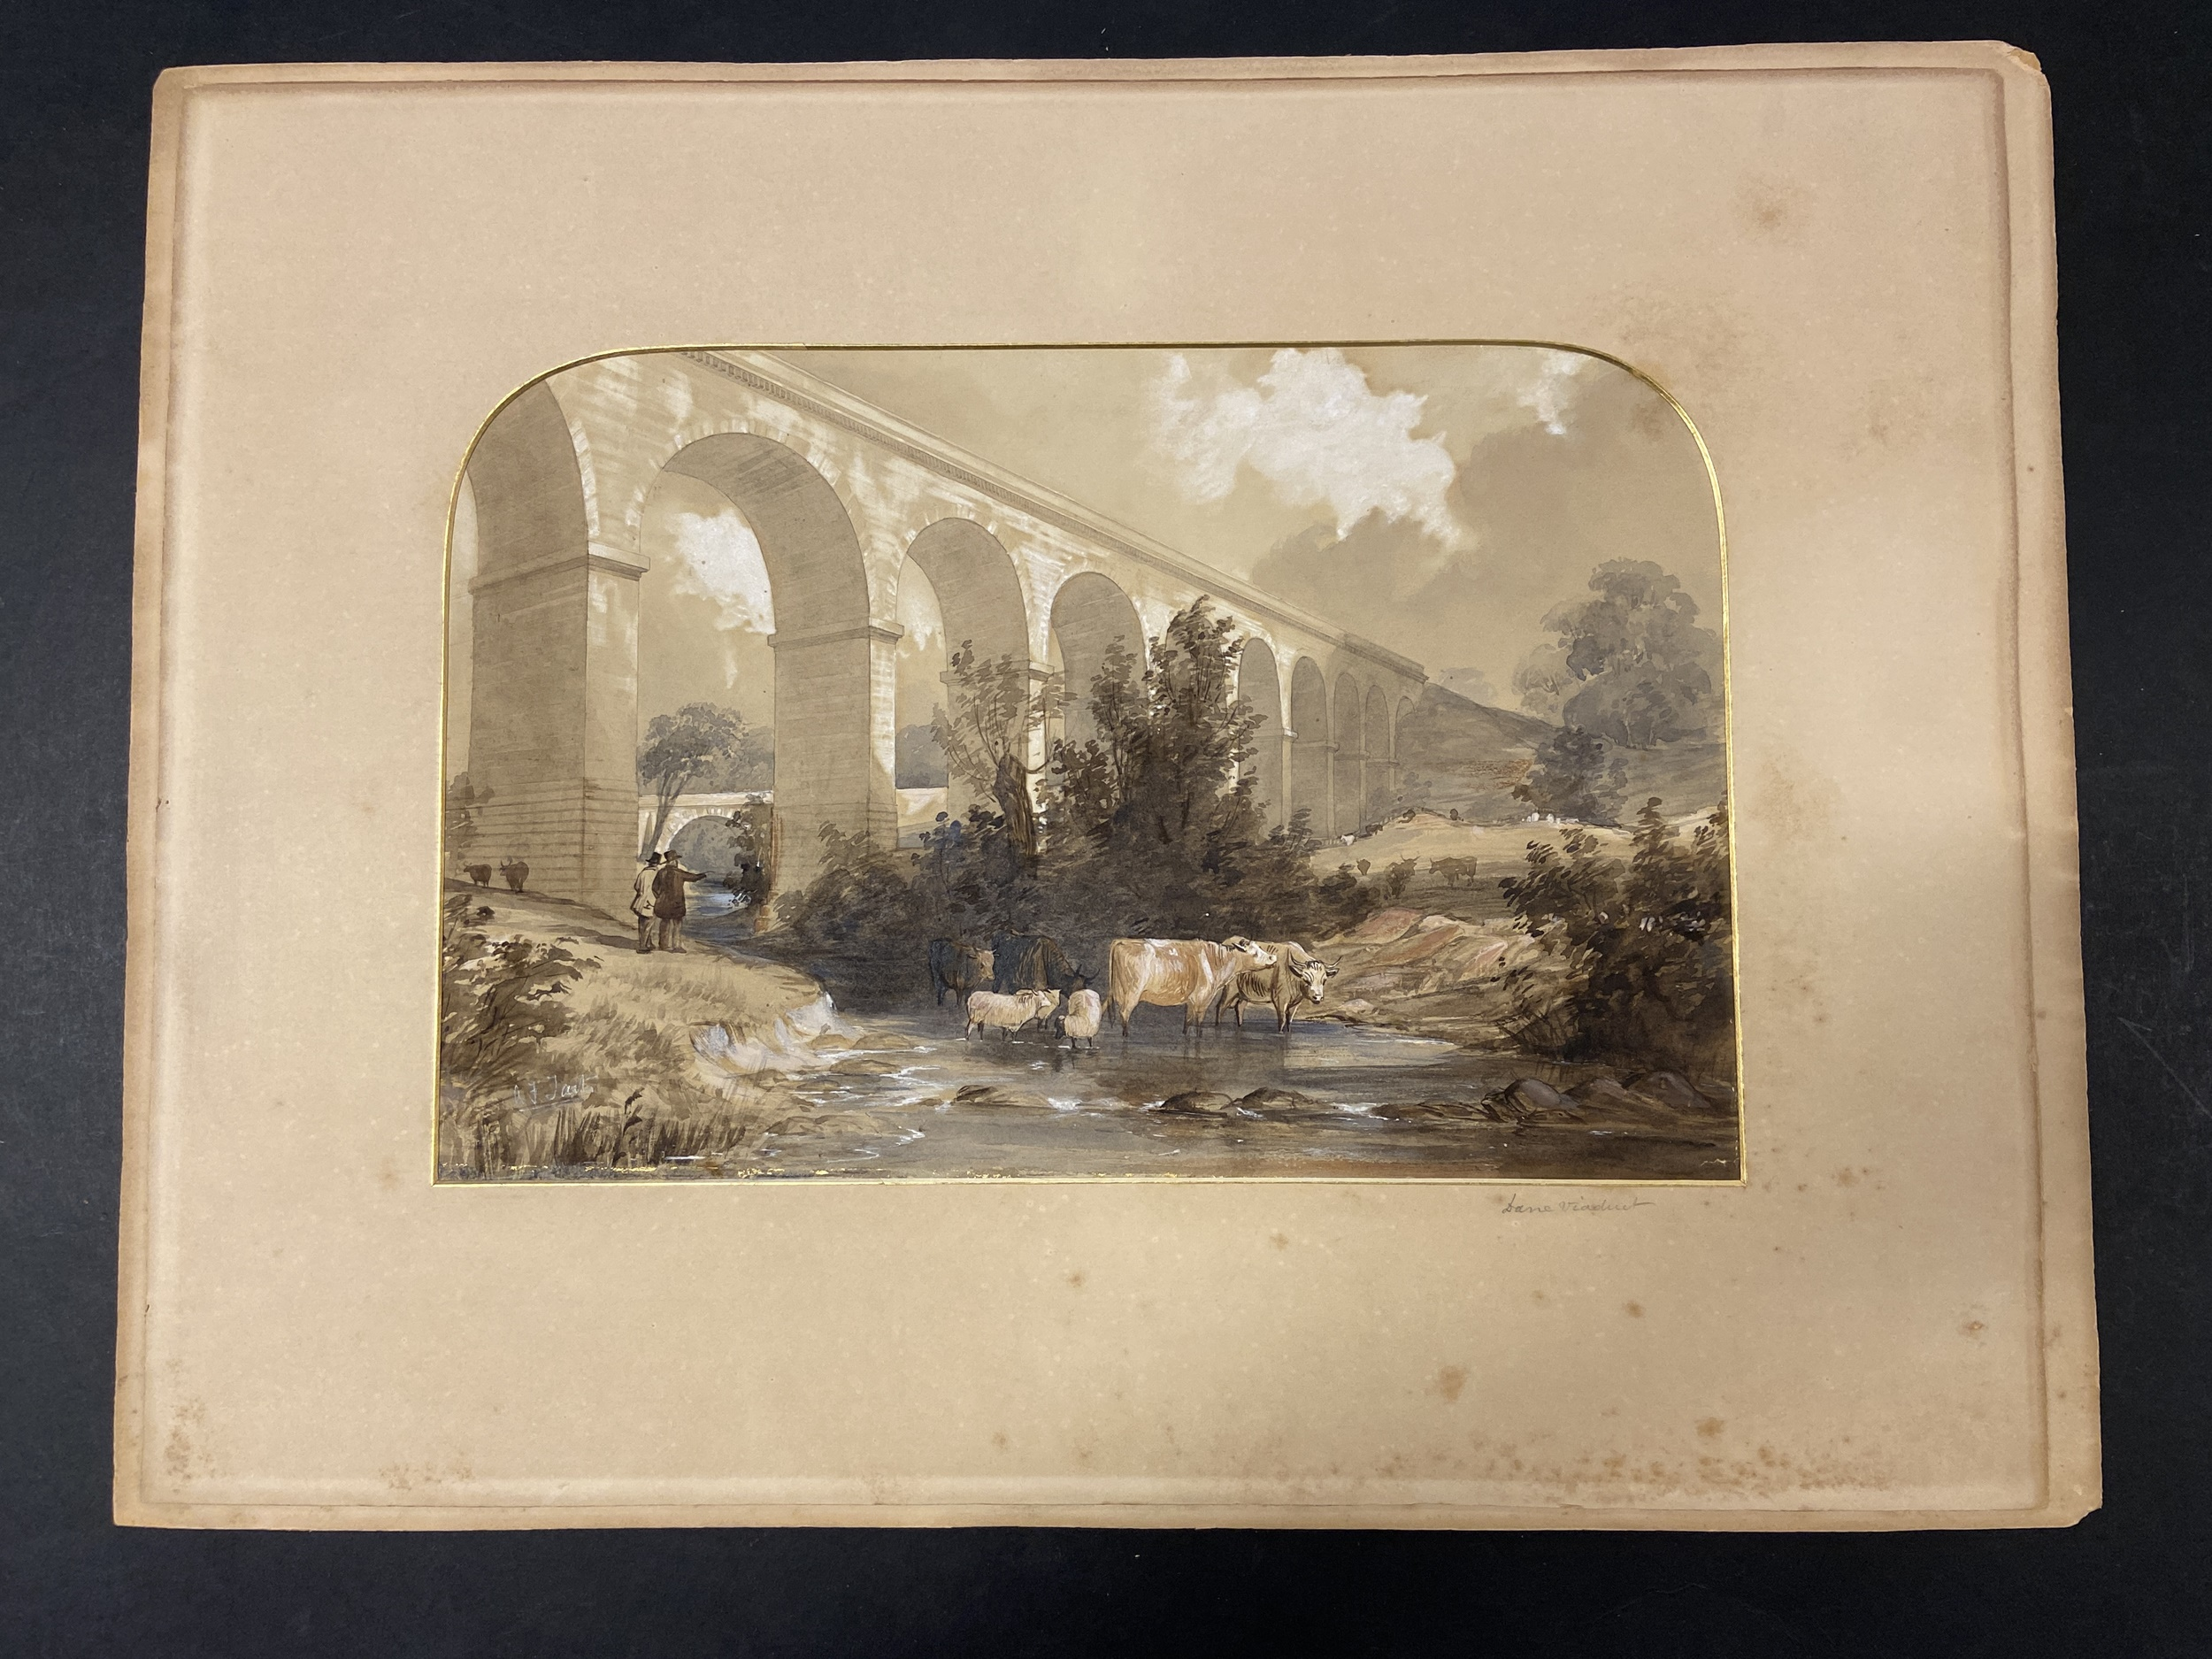 * Tait (Arthur Fitzwilliam). 7 watercolours from Views on the Manchester & Leeds Railway - Image 5 of 7